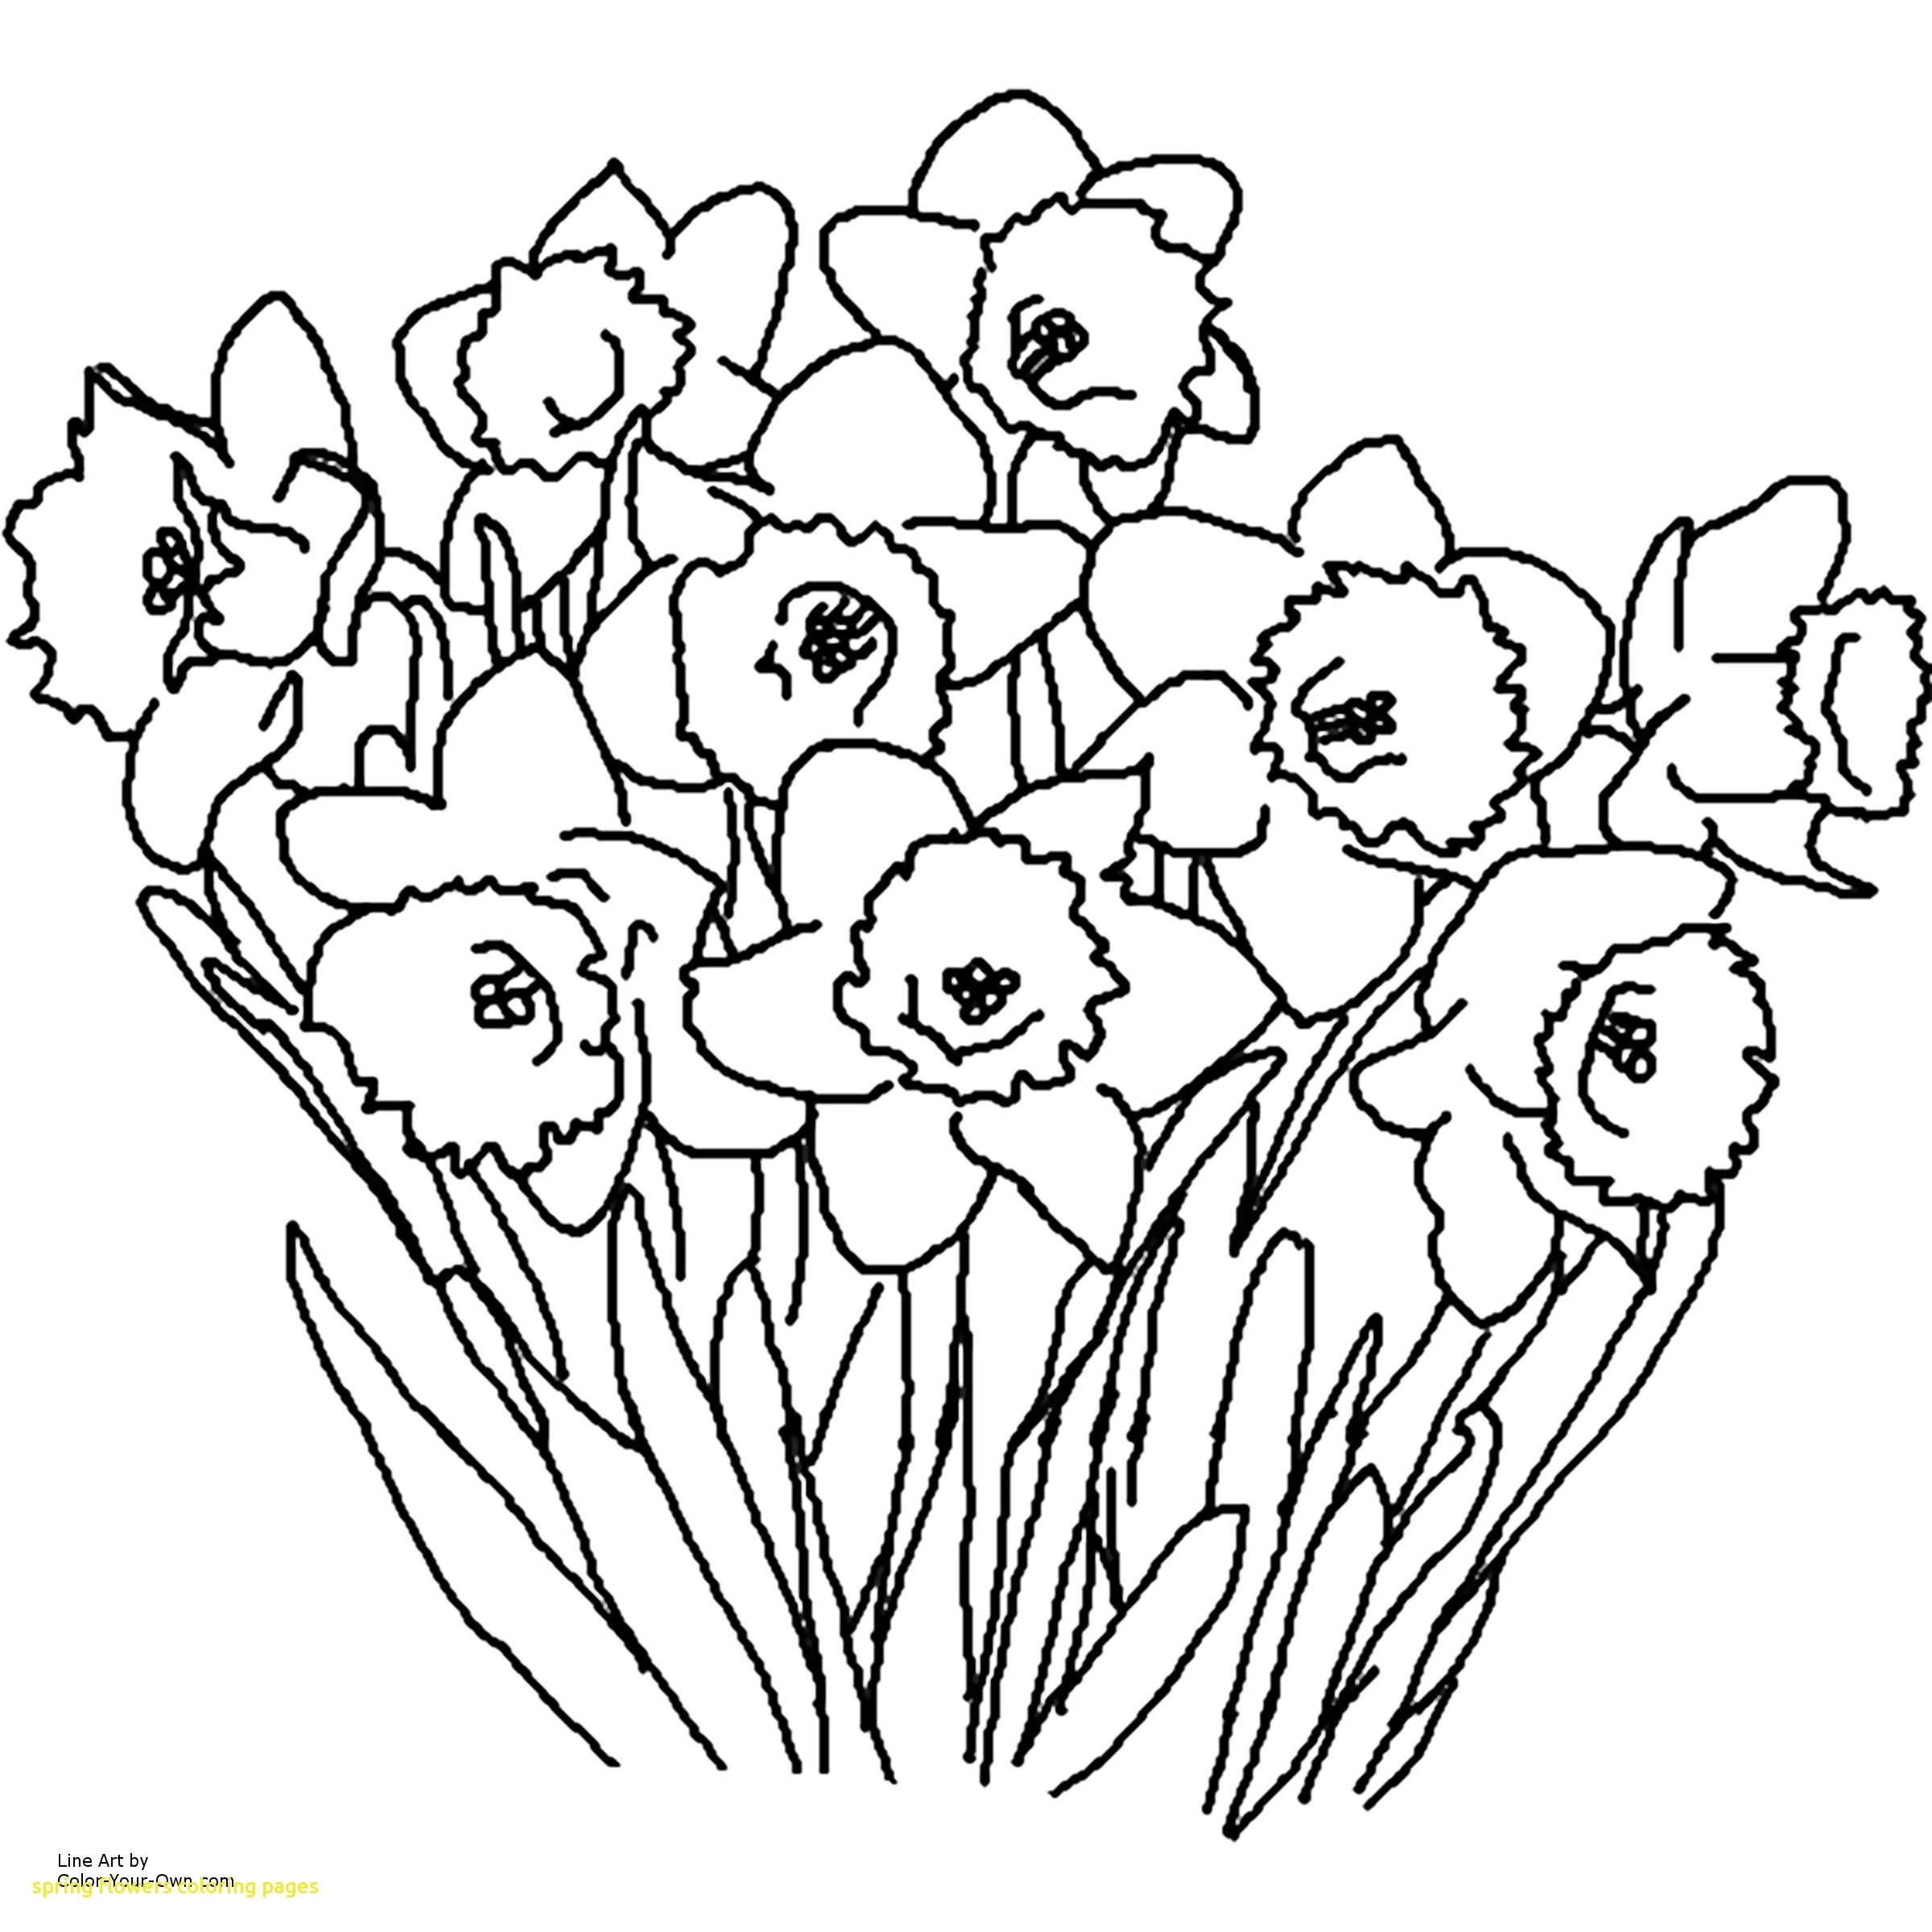 New Daffodil Flower Coloring Pages Collection Printable Of New Daffodil Flower Coloring Pages Collection Printable